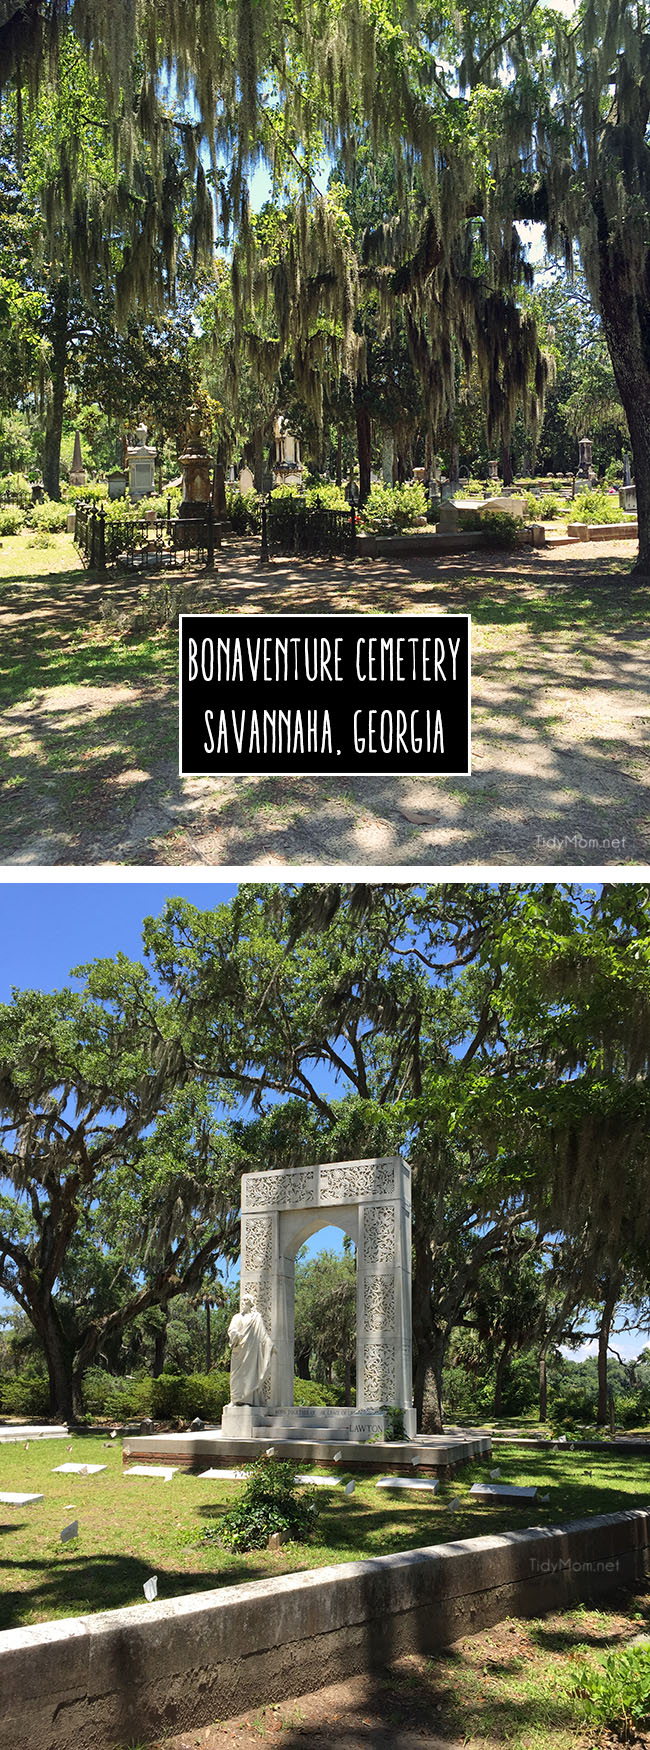 Hauntingly beautiful Bonaventure Cemetery Savannah, Georgia Featured on the cover of Midnight in the Garden of Good and Evil. More Savannah Sightseeing at TidyMom.net